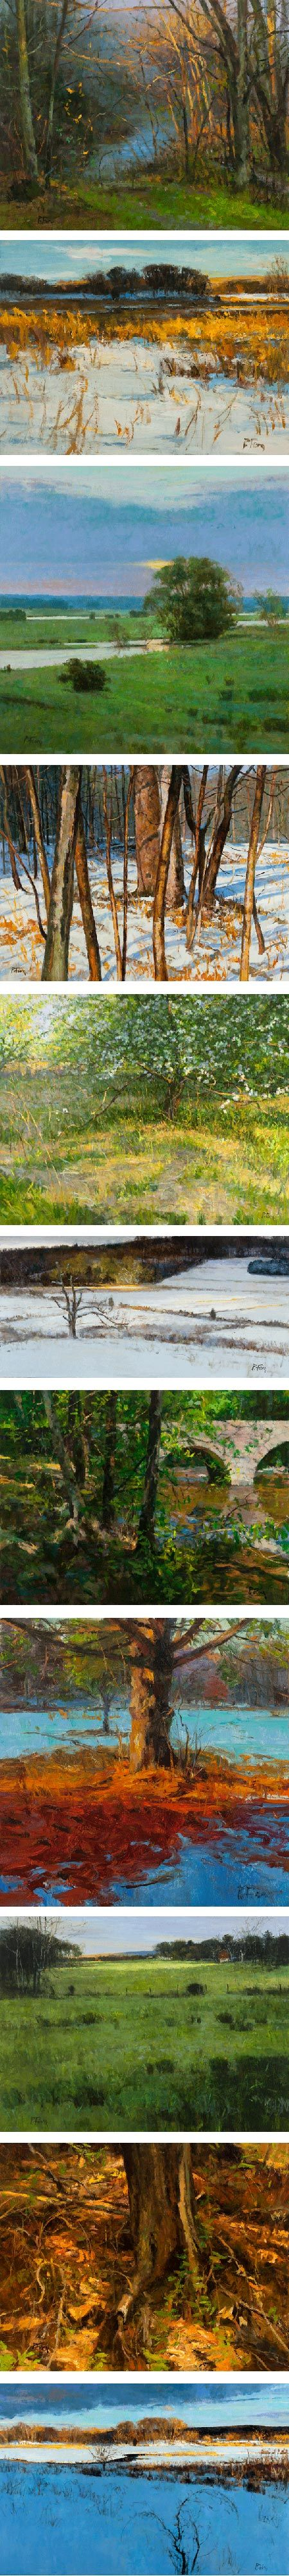 Peter Fiore is a landscape painter originally from New Jersey and now based in northeastern Pennsylvania.